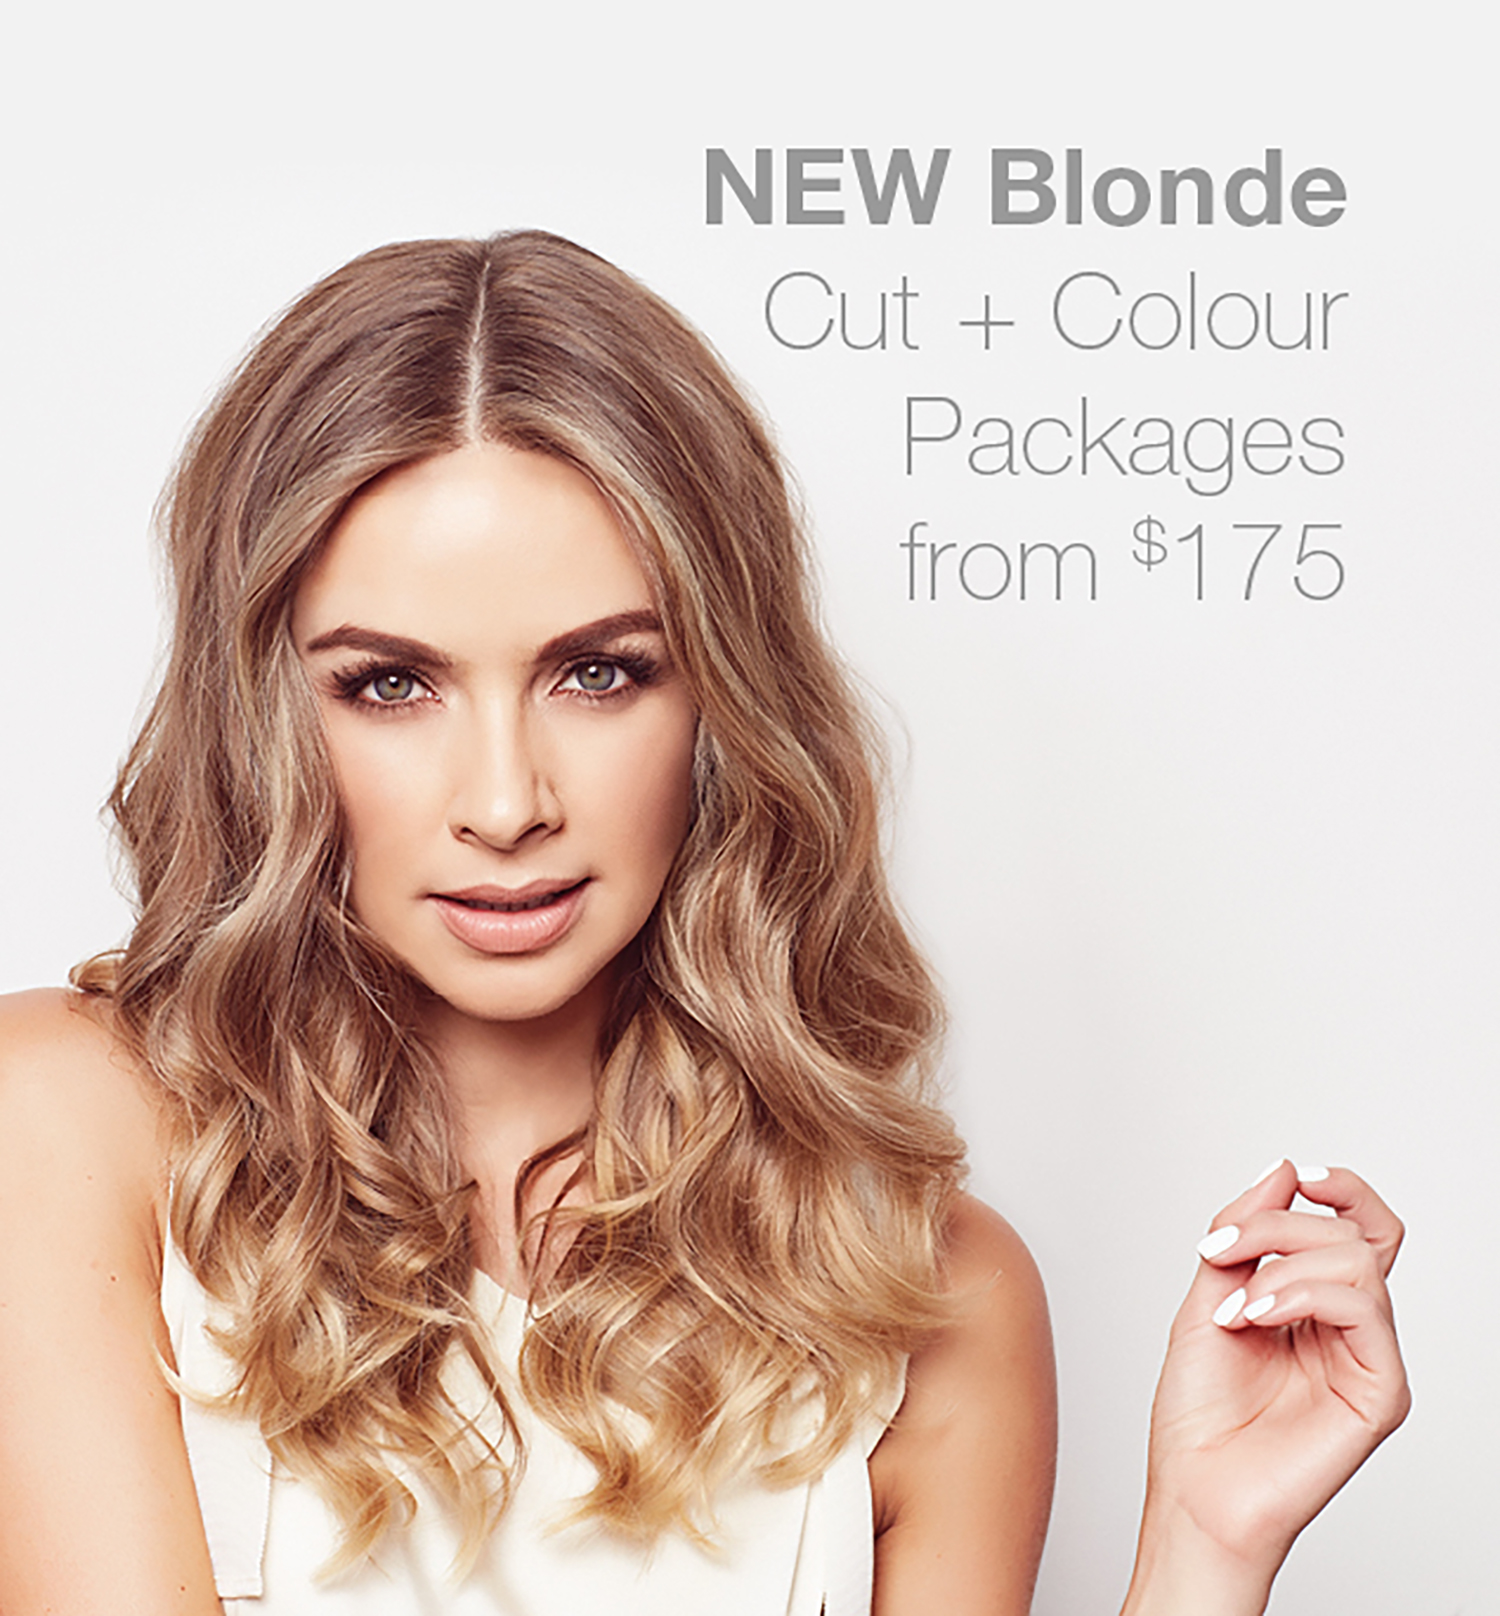 Blonde Collection 2018 for Maurice Meade – Perth beauty blogger Katie Rebekah